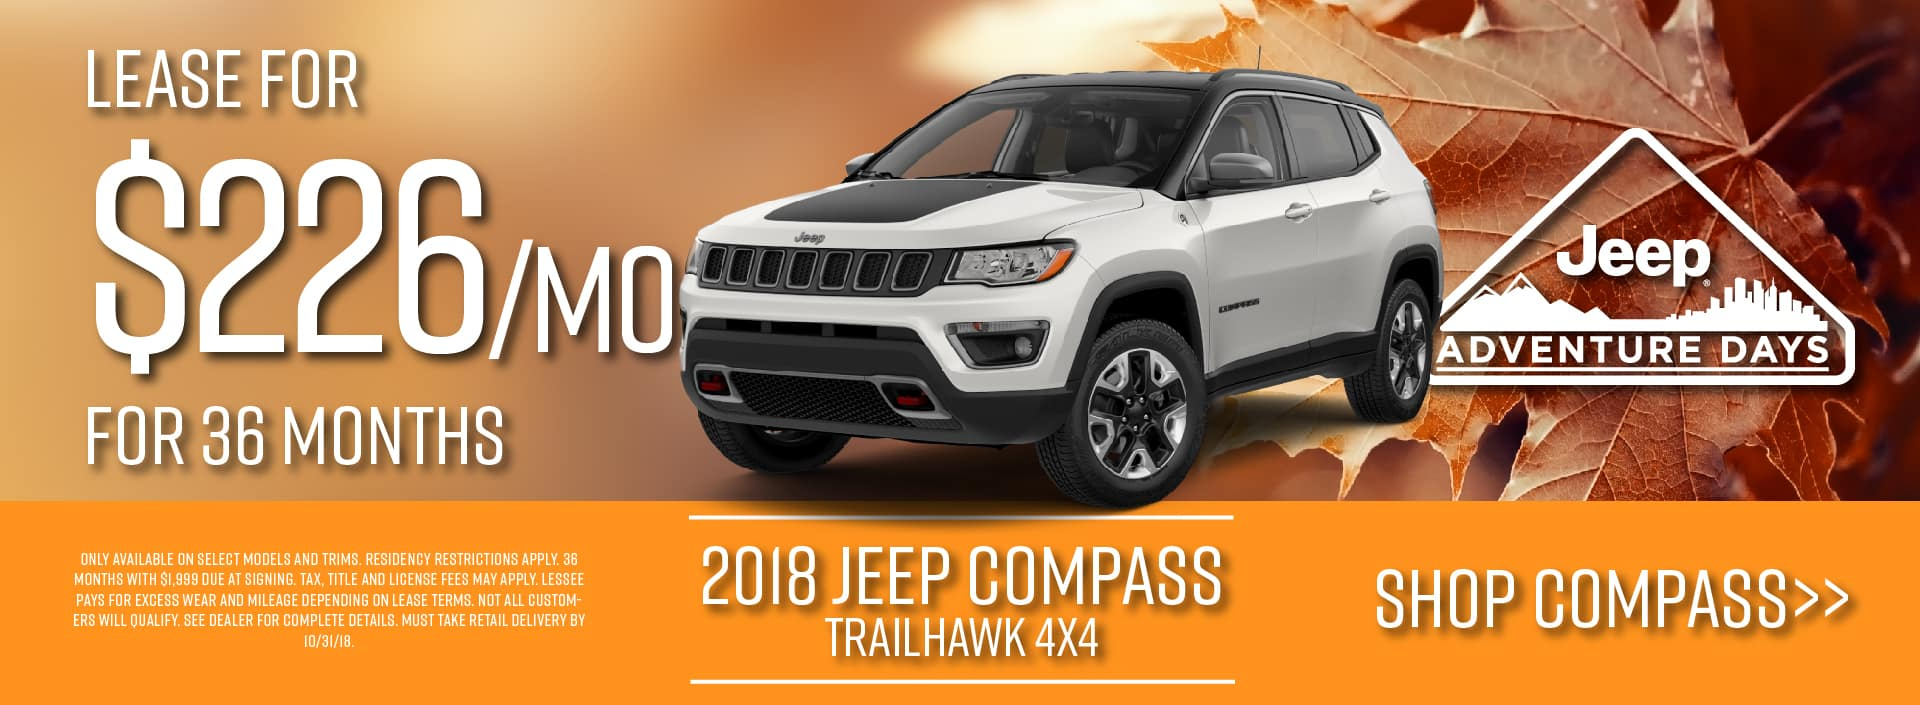 Delightful Tri State Chrysler Dodge Jeep RAM | New And Used Car Dealer In Maryville, MO